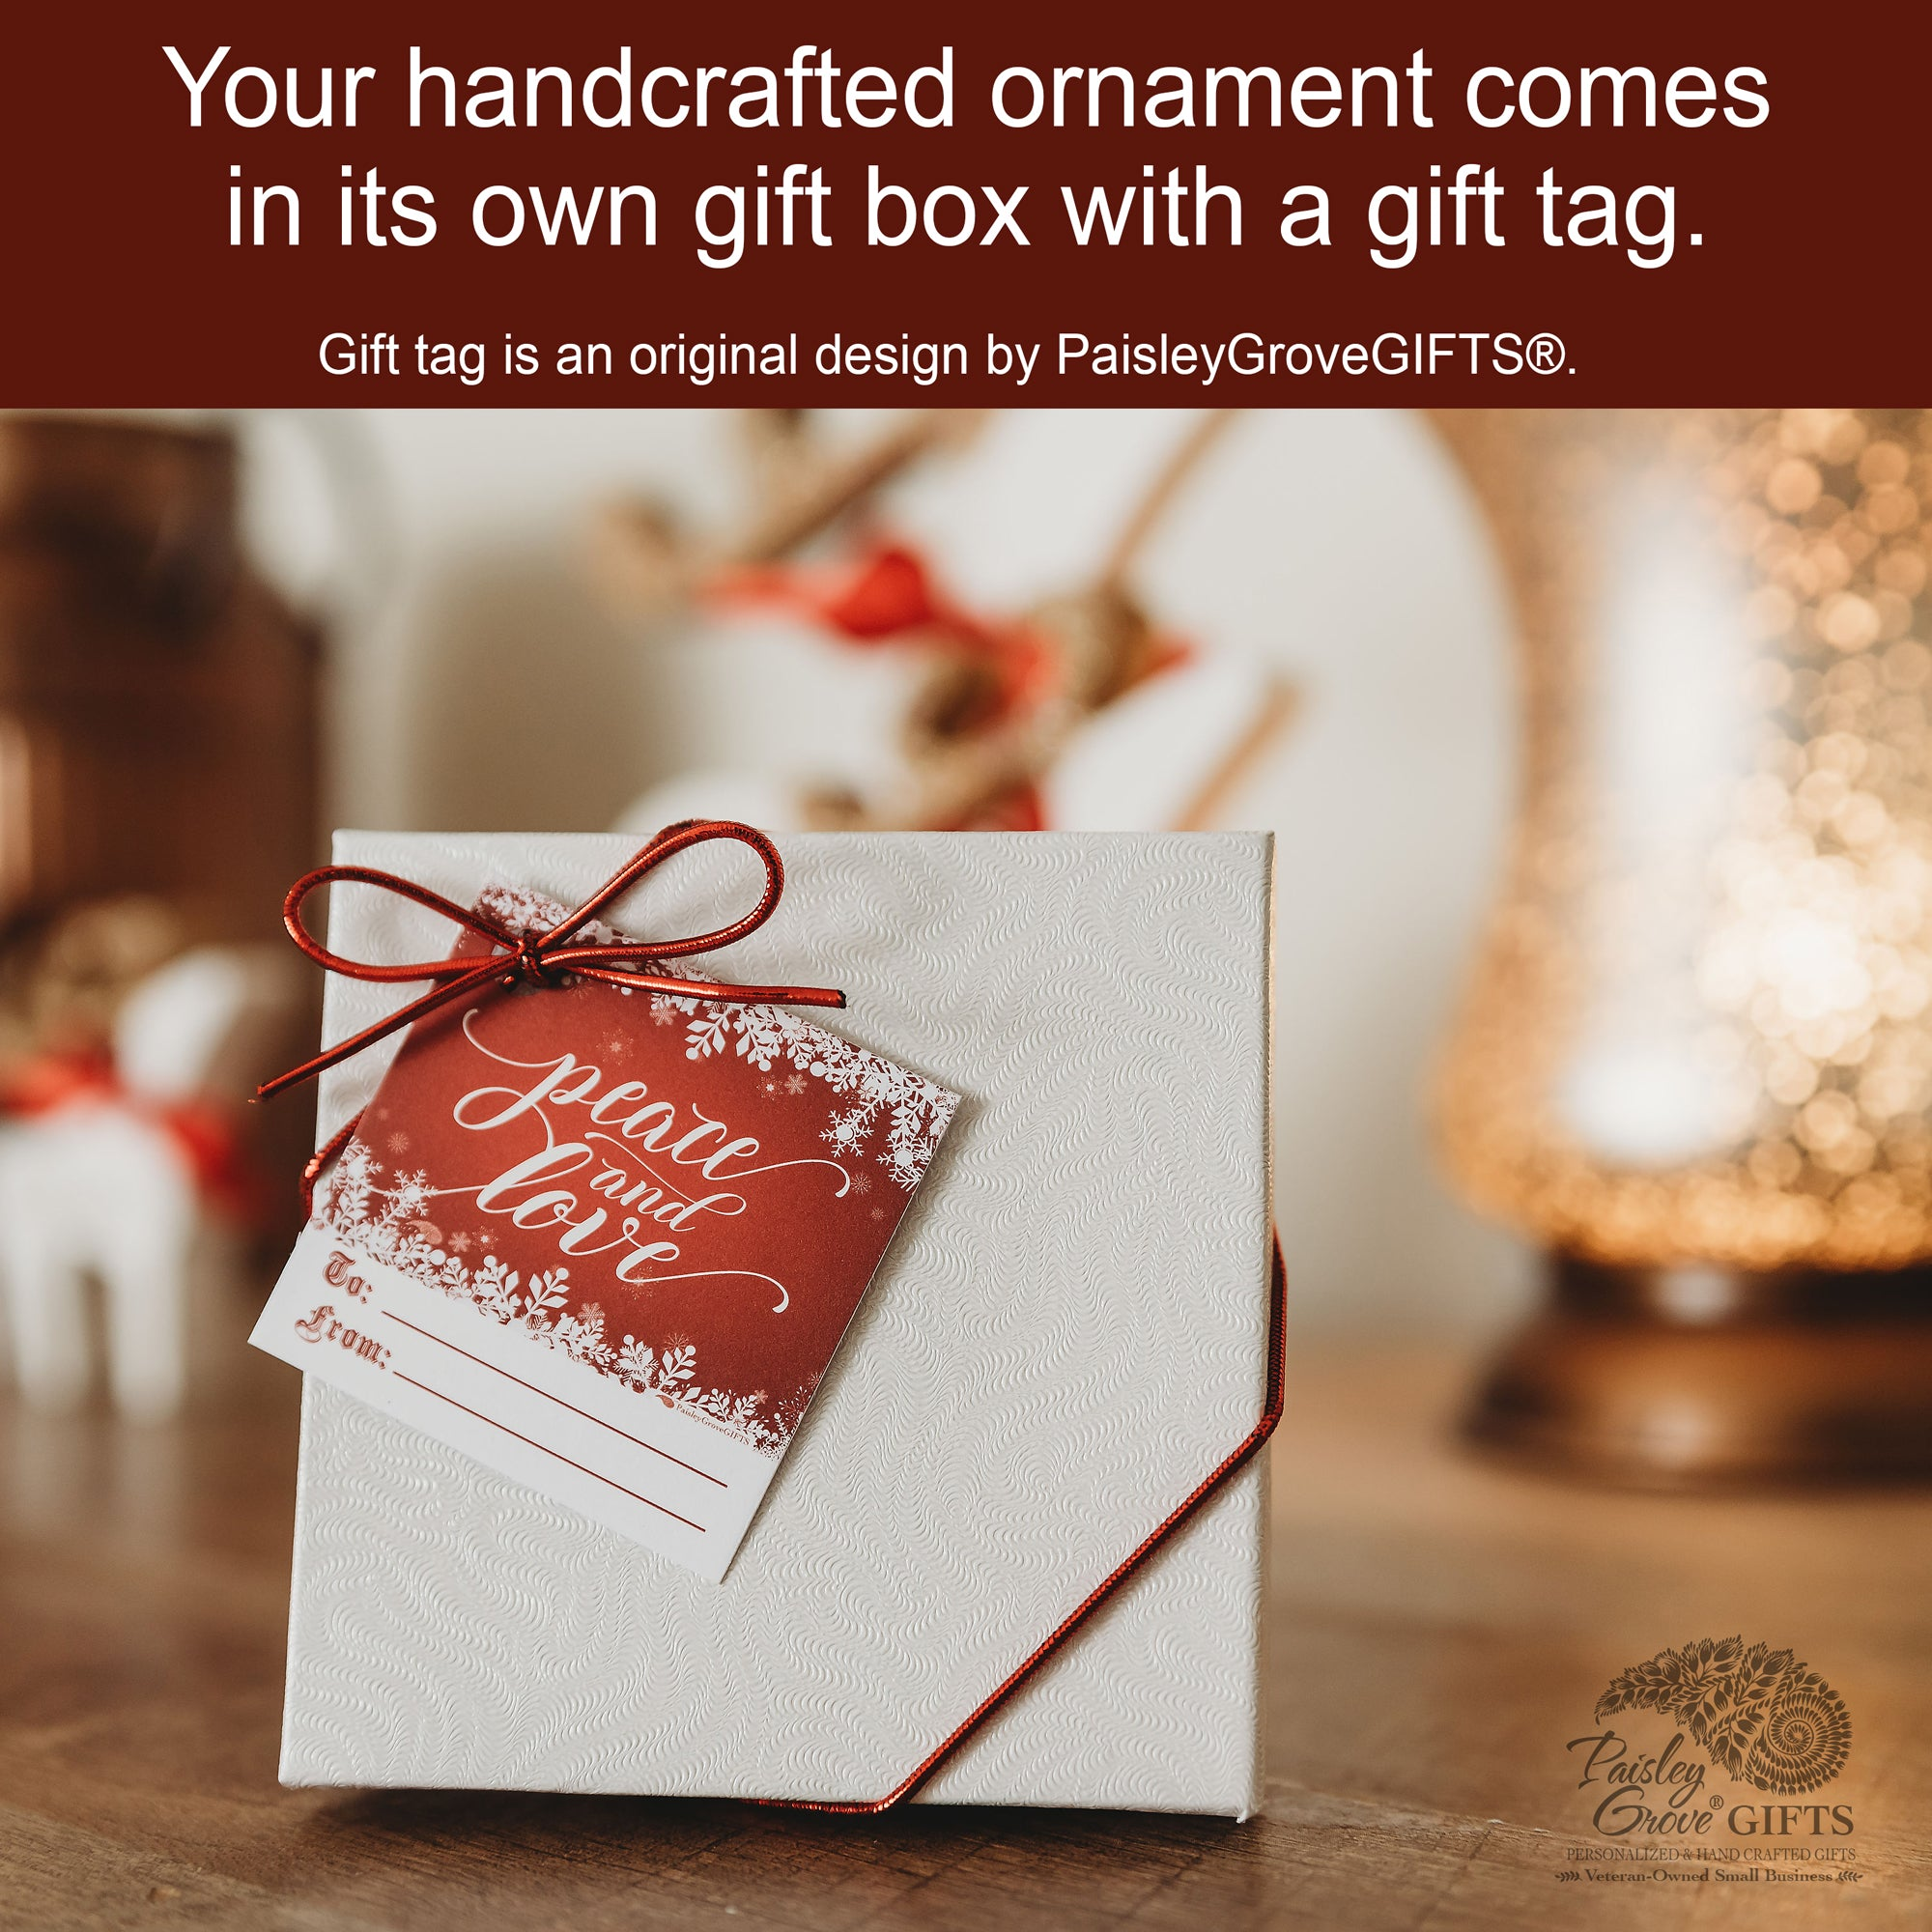 CopyrightPaisleyGroveGIFTS S510e Our 1st Christmas as new Parents Ornament comes with a free gift box and gift tag